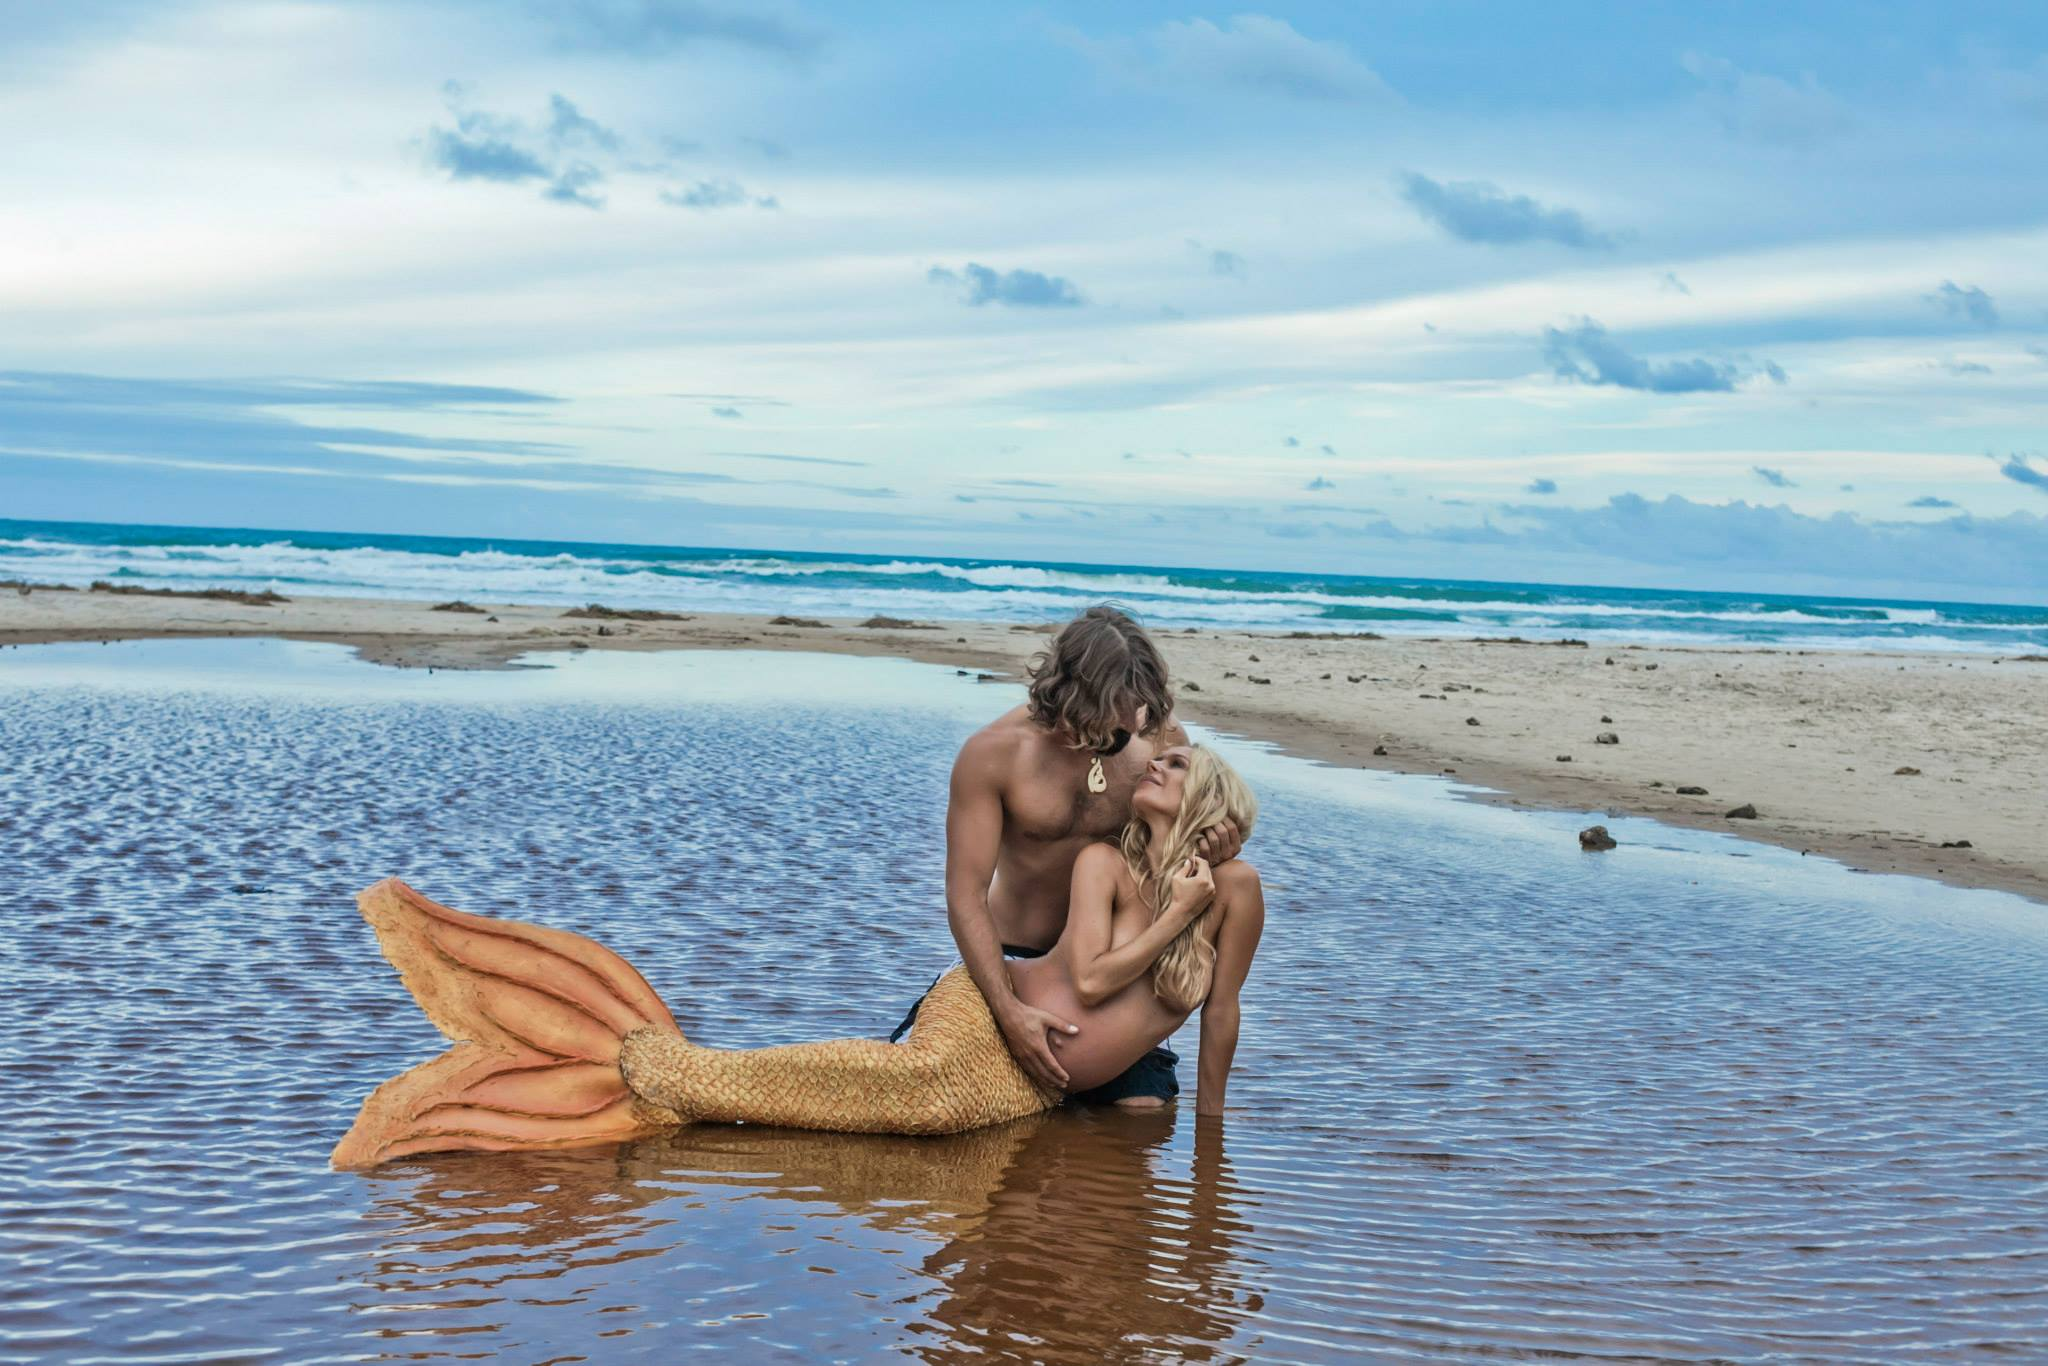 powerful image of couple in byron bay mermaid kazzie mahina by donatella parisini